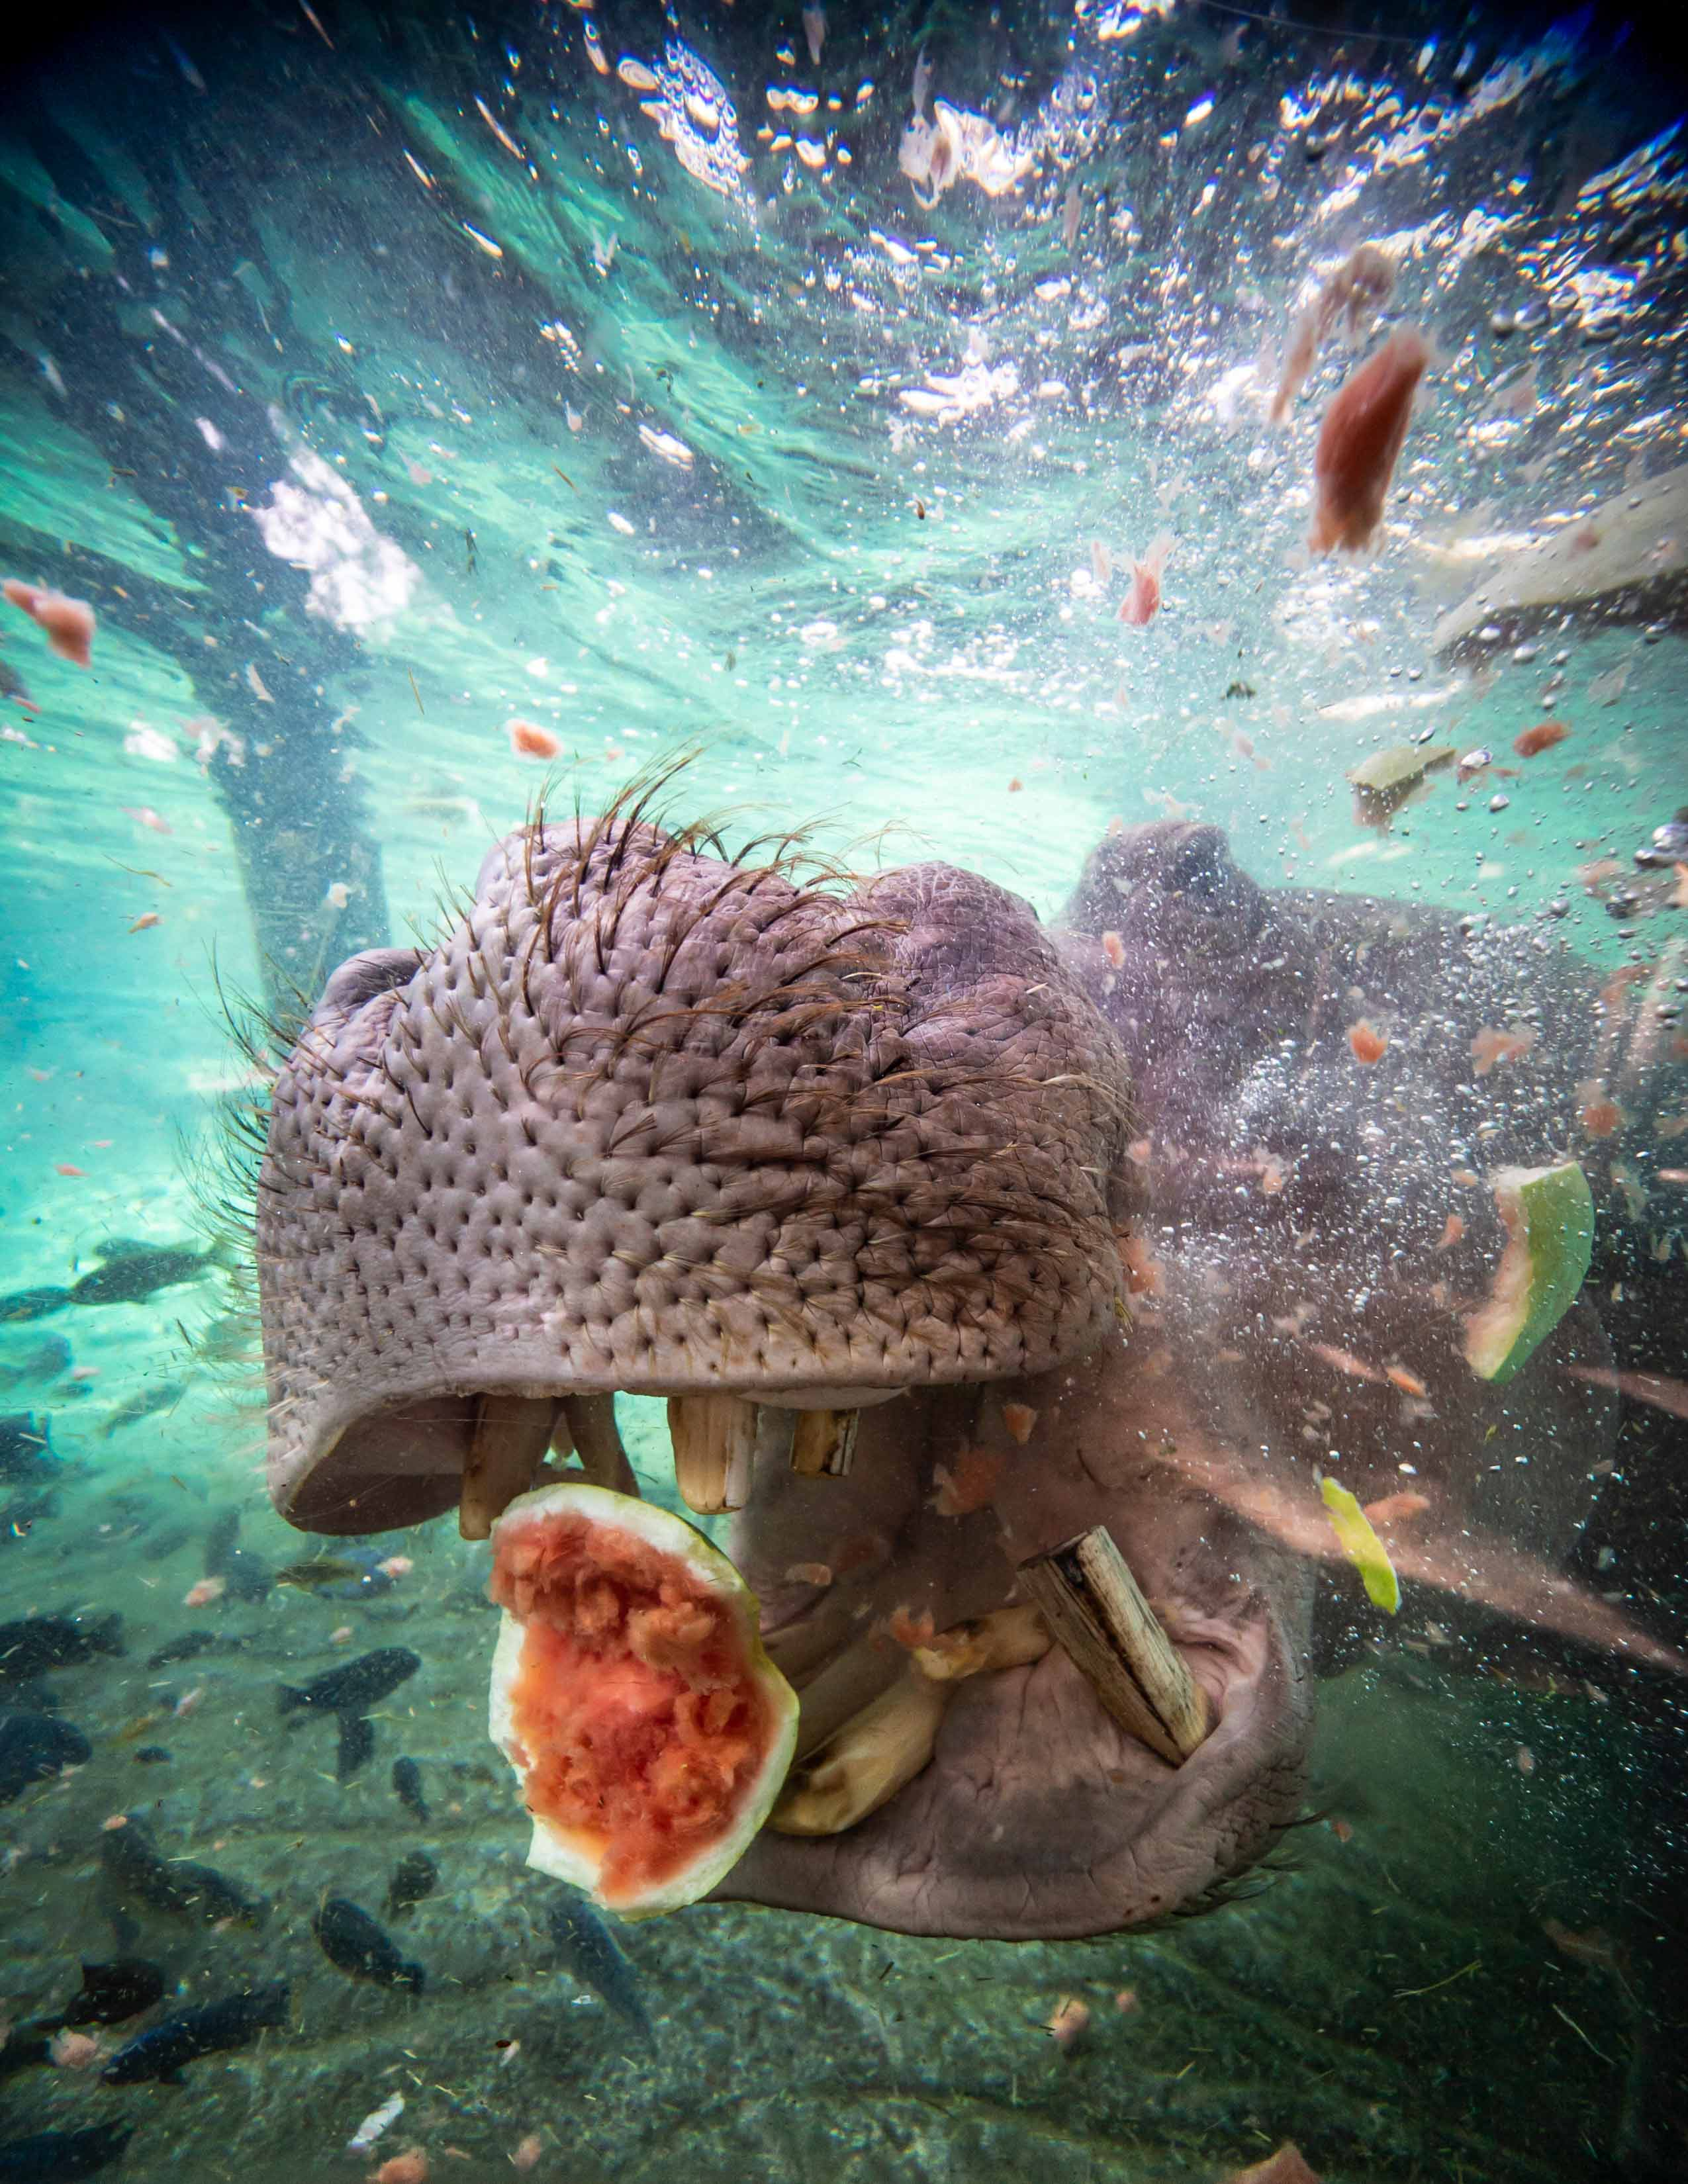 A hippo eating underwater